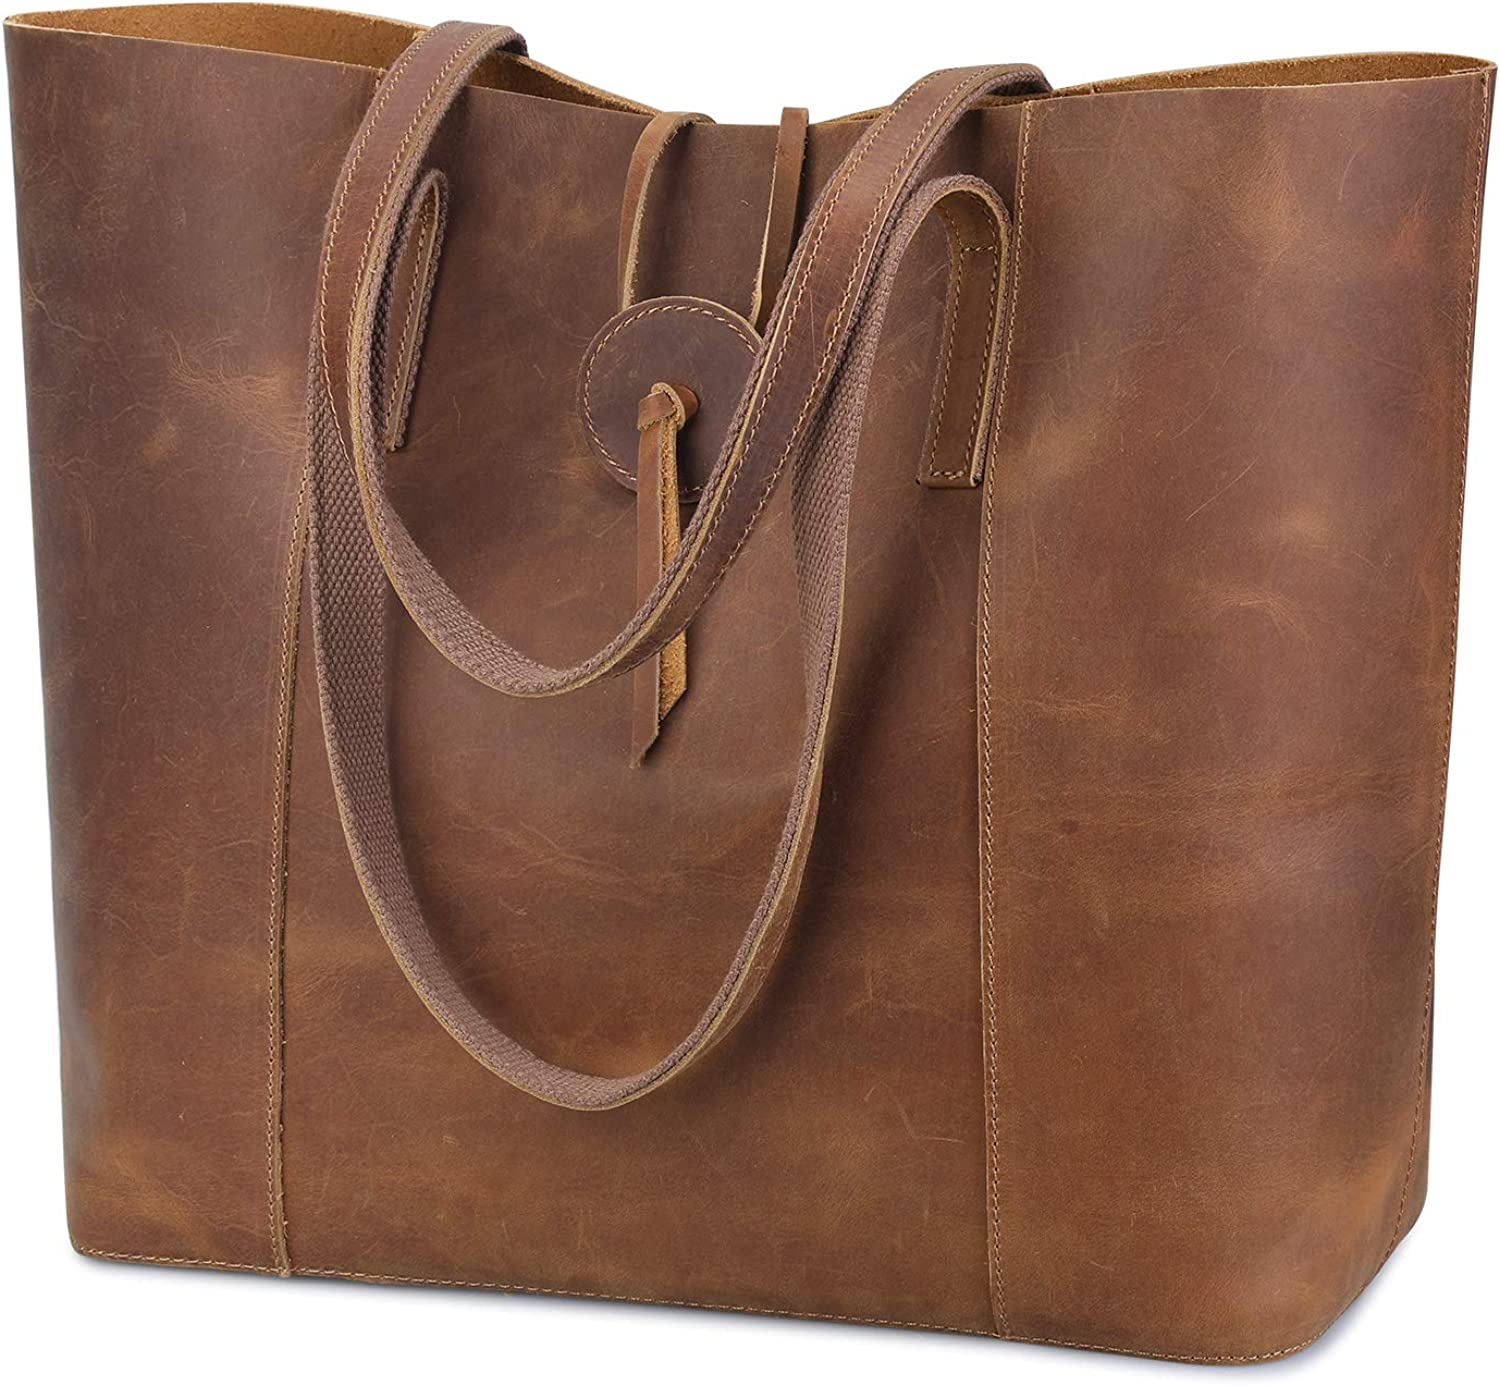 S-ZONE Vintage Genuine Leather Tote Bag for Women Large Shoulder Purse Handbag